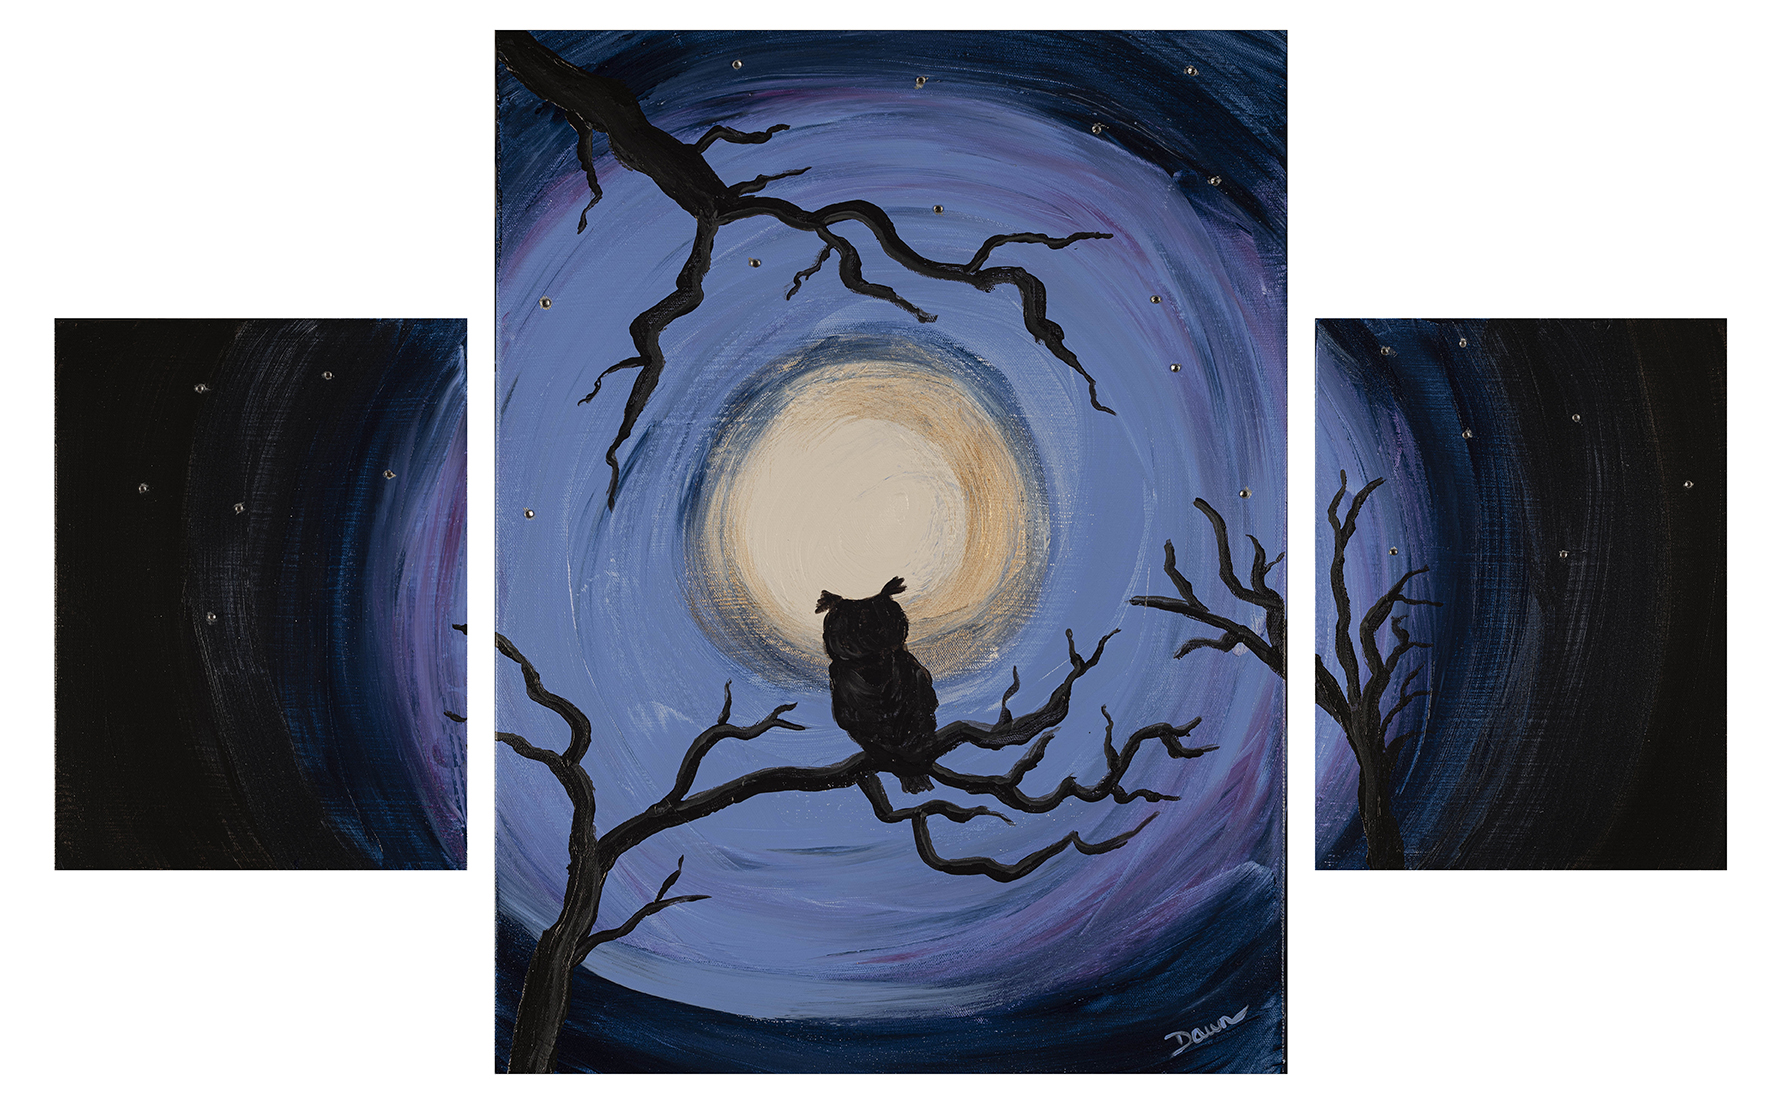 Owl in the Moonlight I, an Acrylic & Mixed Media Painting by Dawn M. Wayand